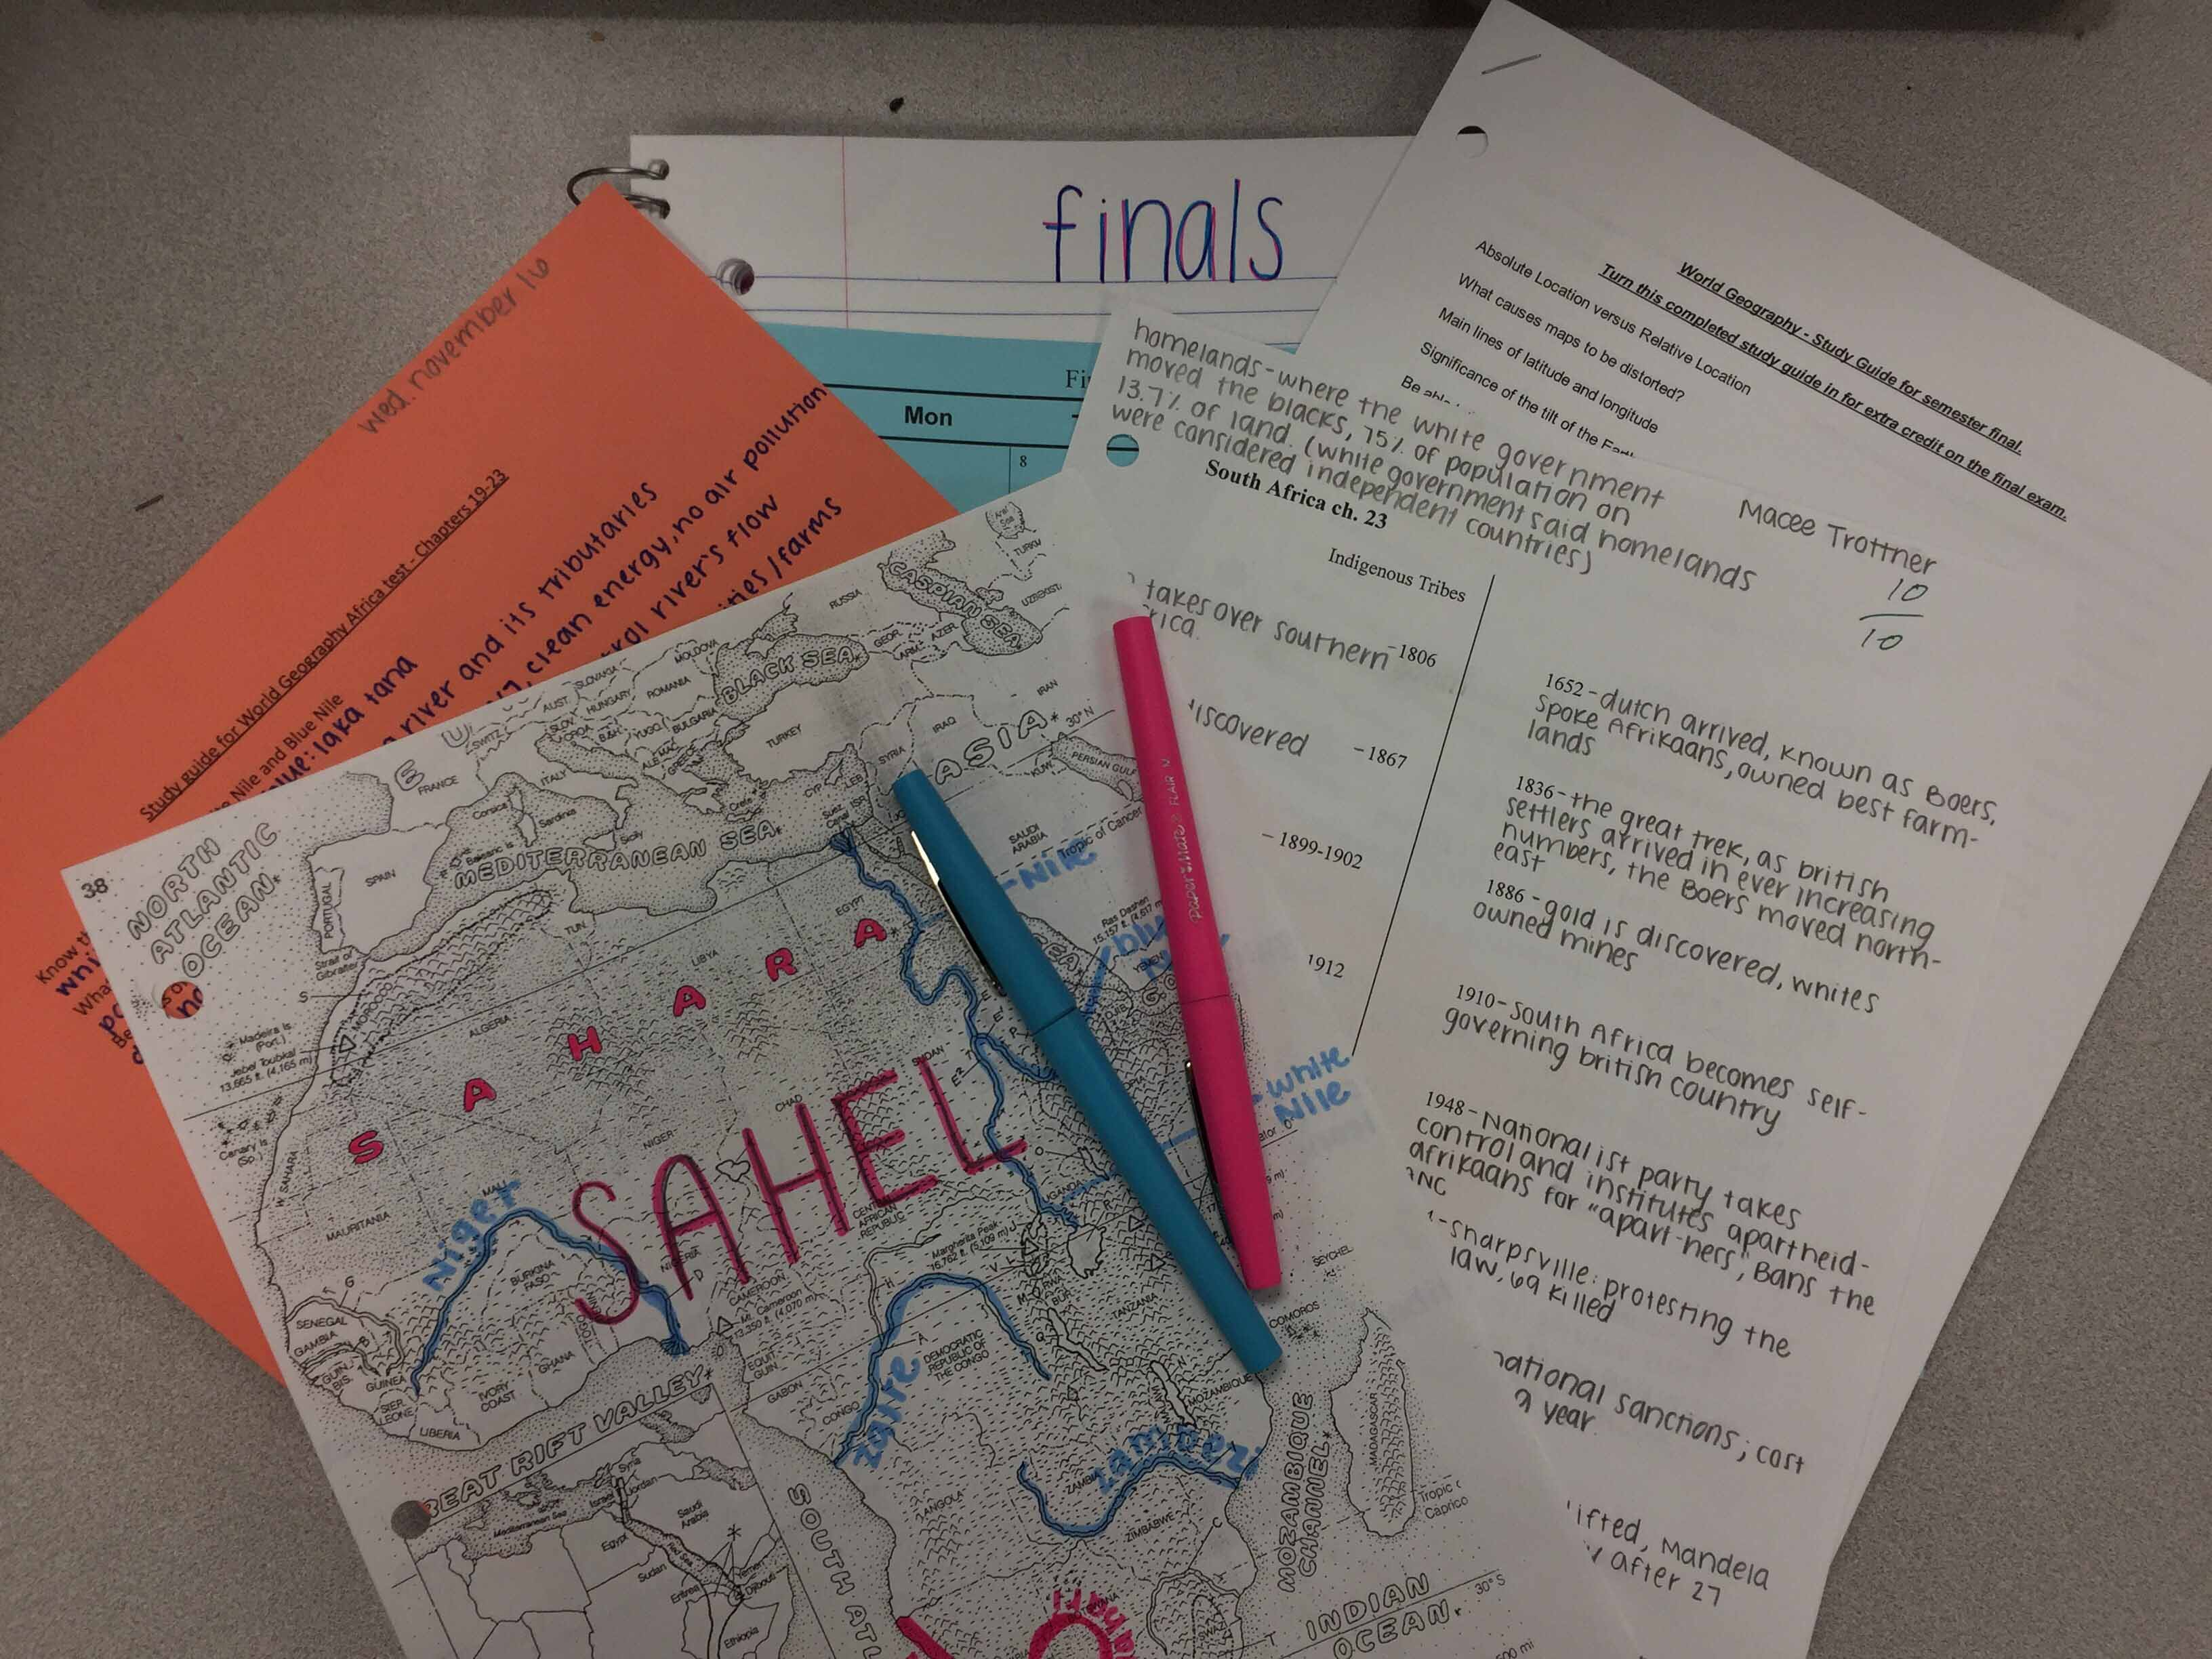 With finals week approaching, students start to prepare themselves for testing.